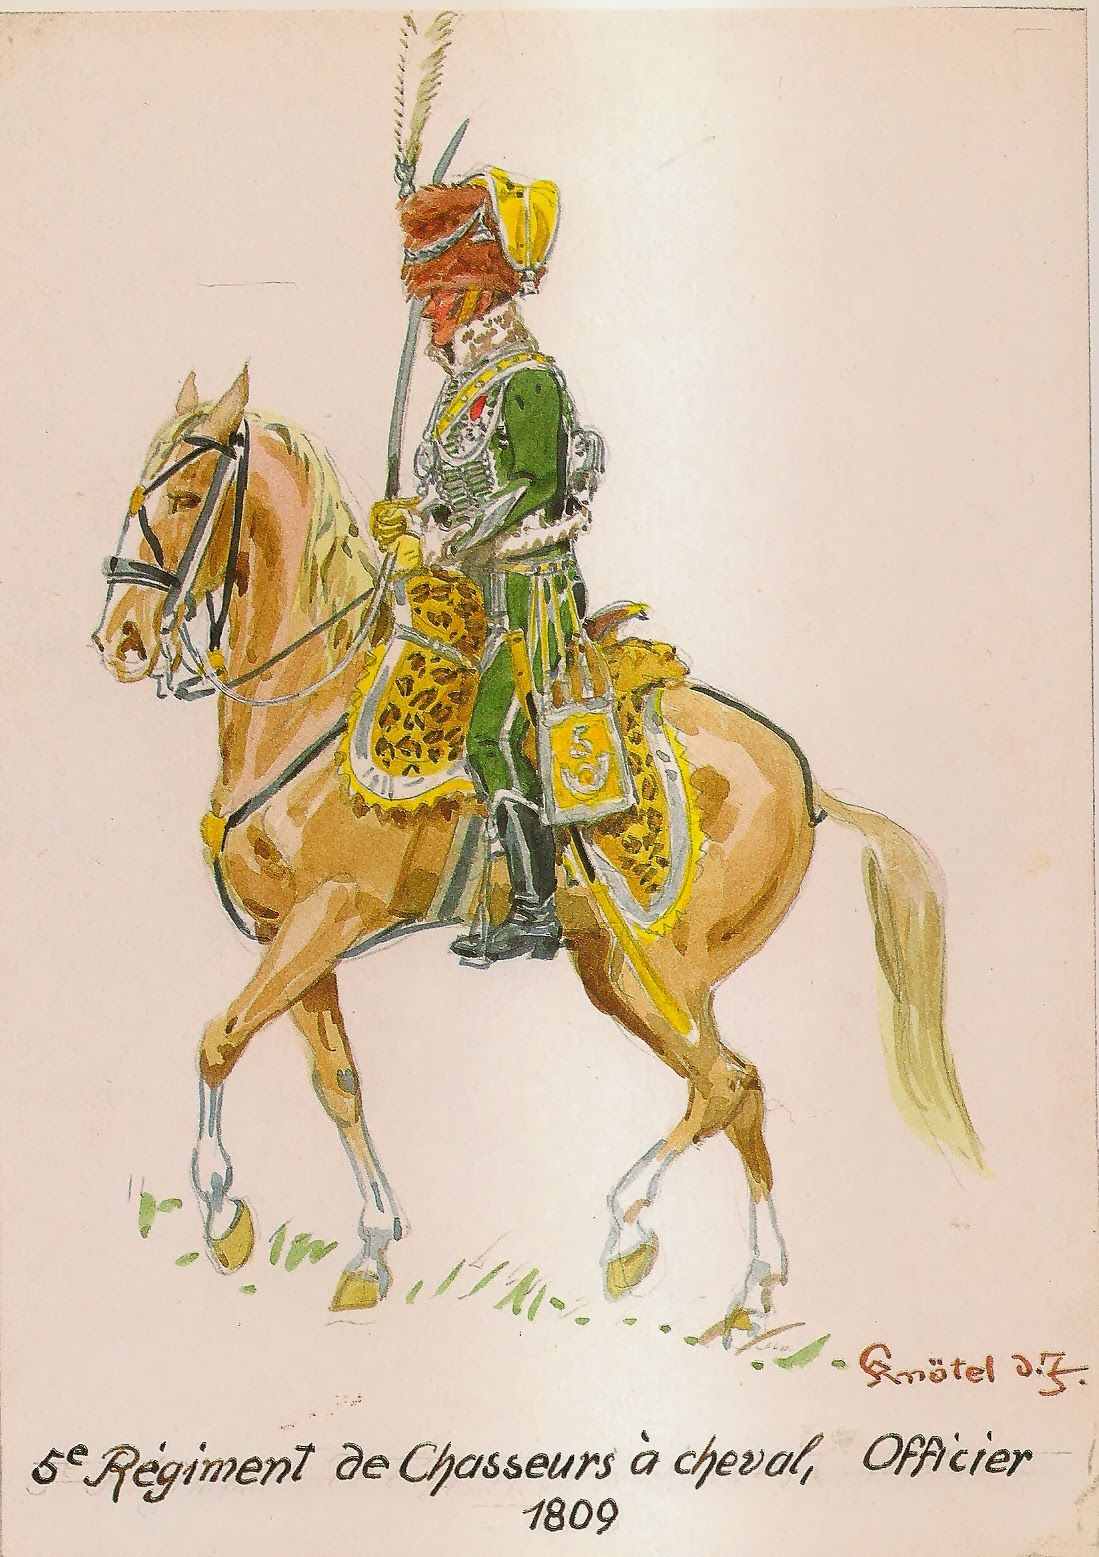 French; 5th Chasseurs a Cheval, Officer Grande Tenue 1809